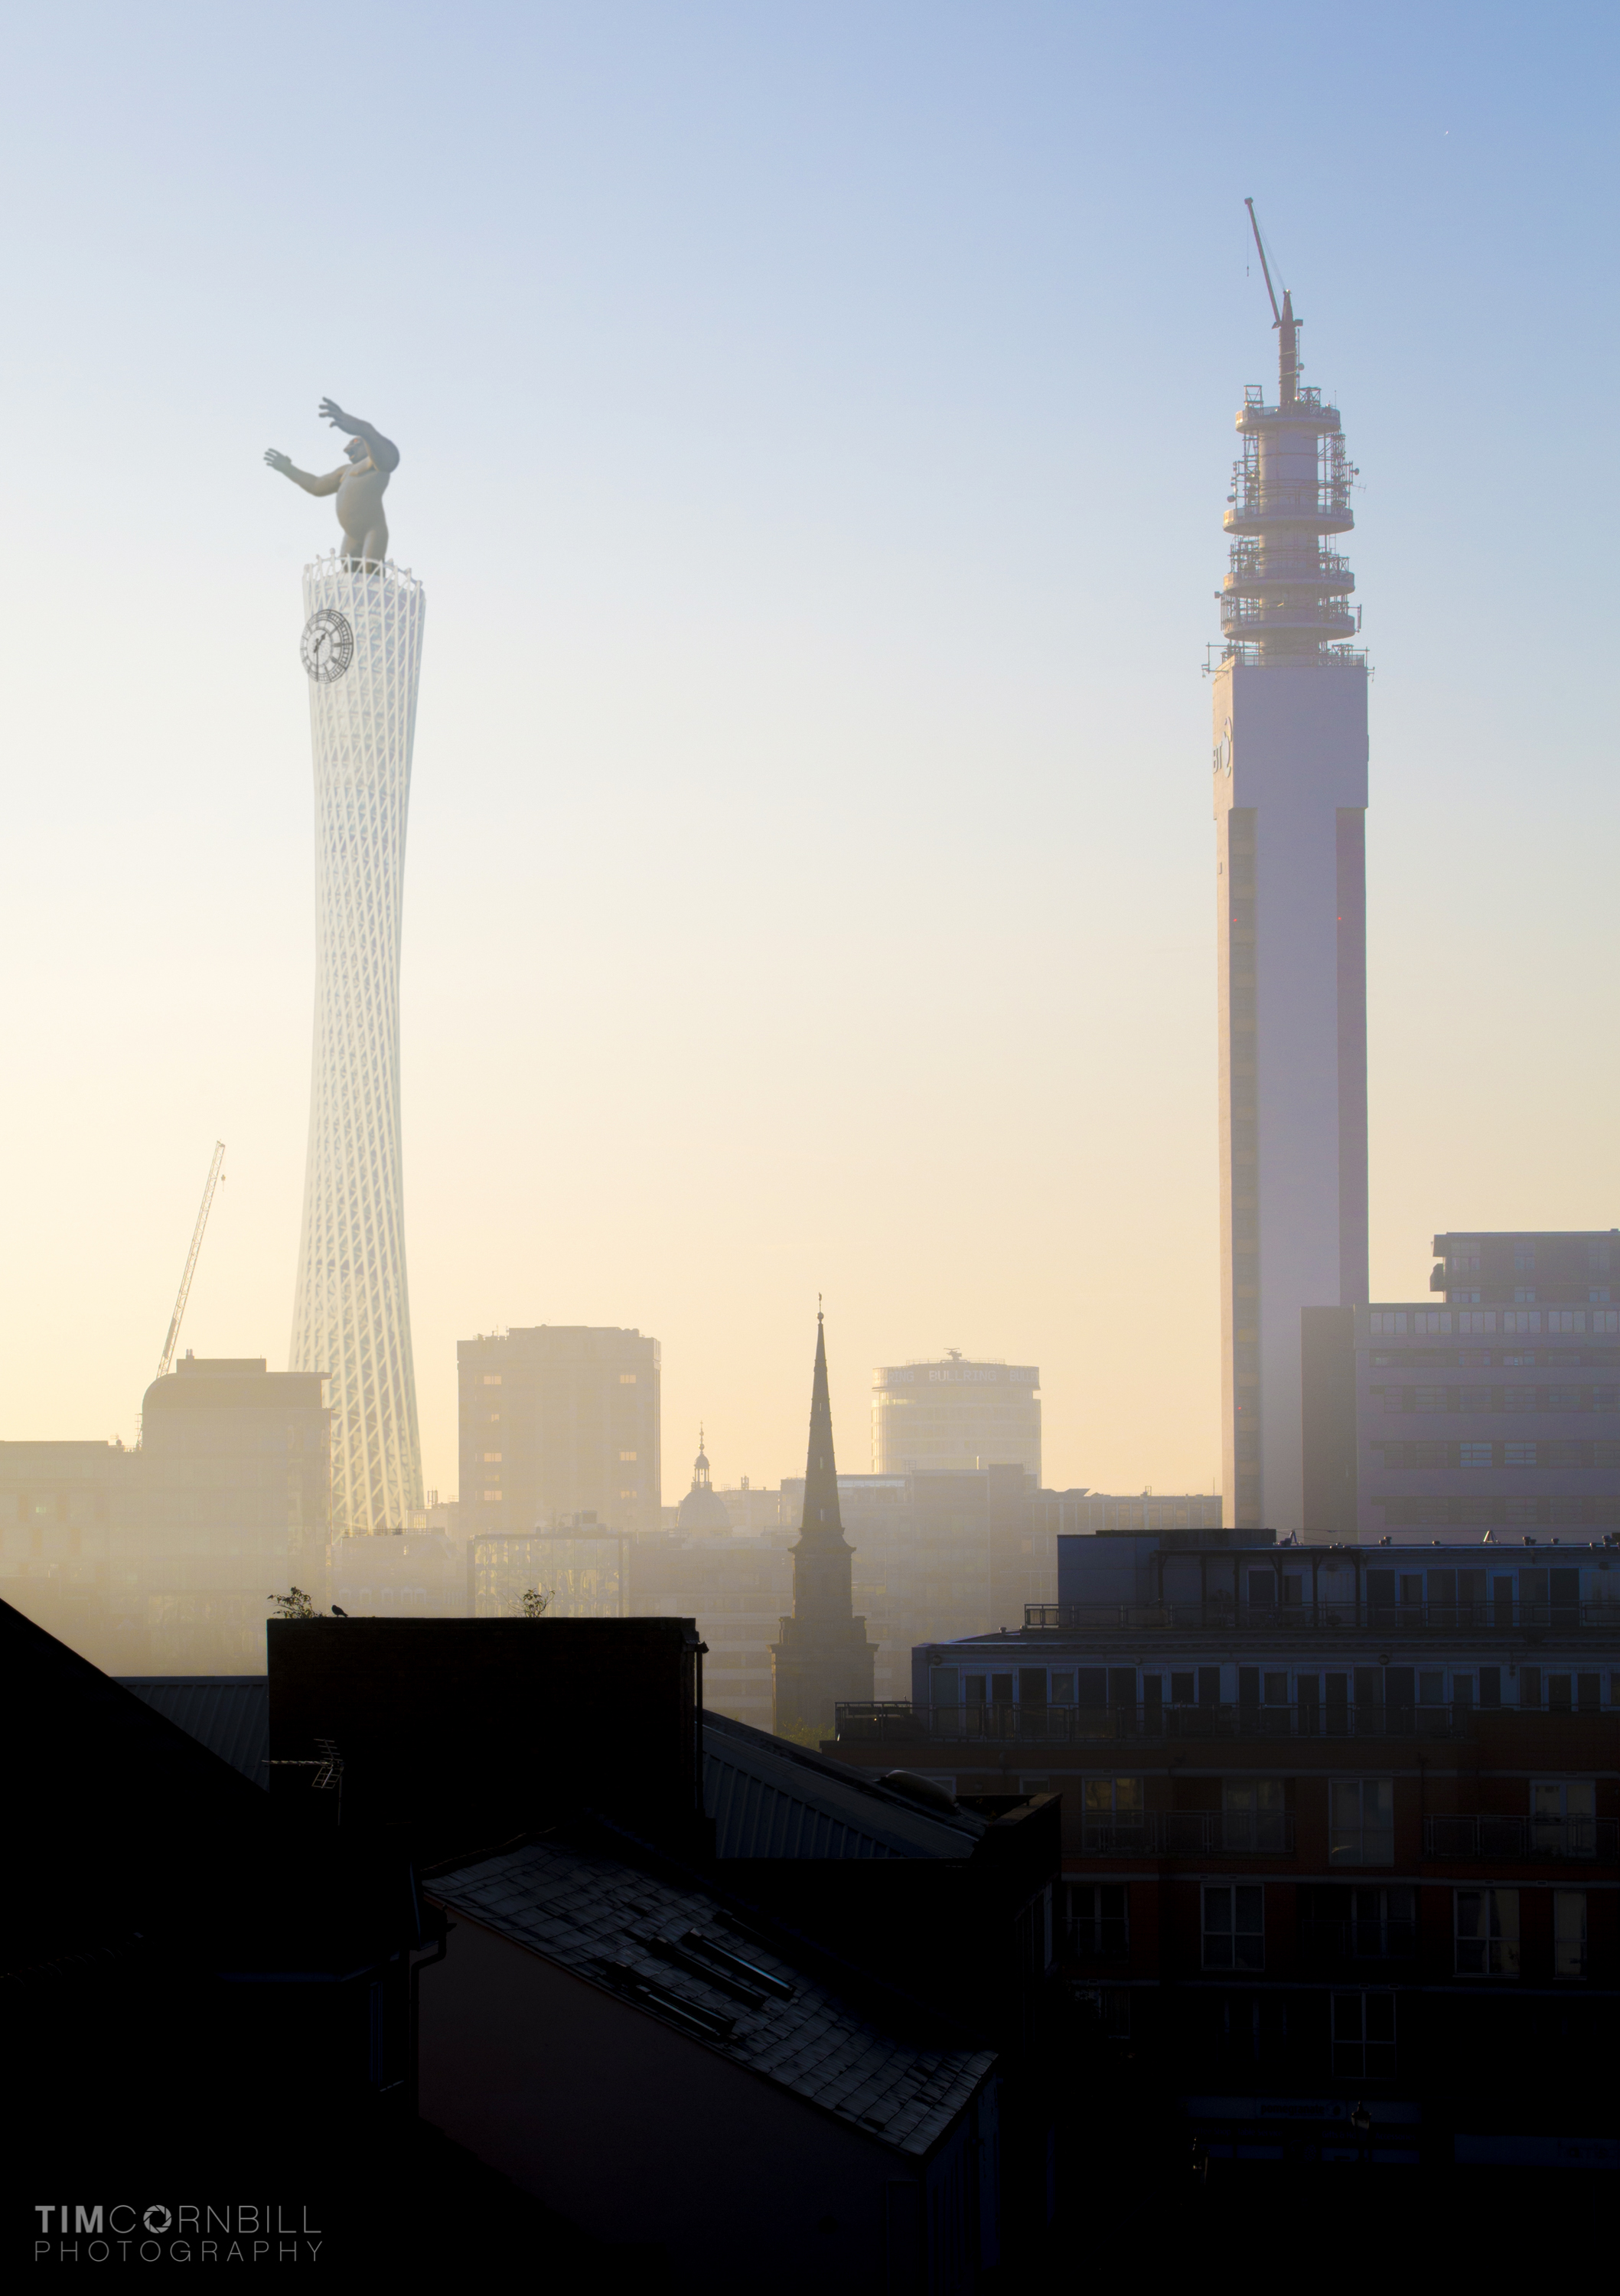 At 180m high, the clock tower is set to be the tallest in the world